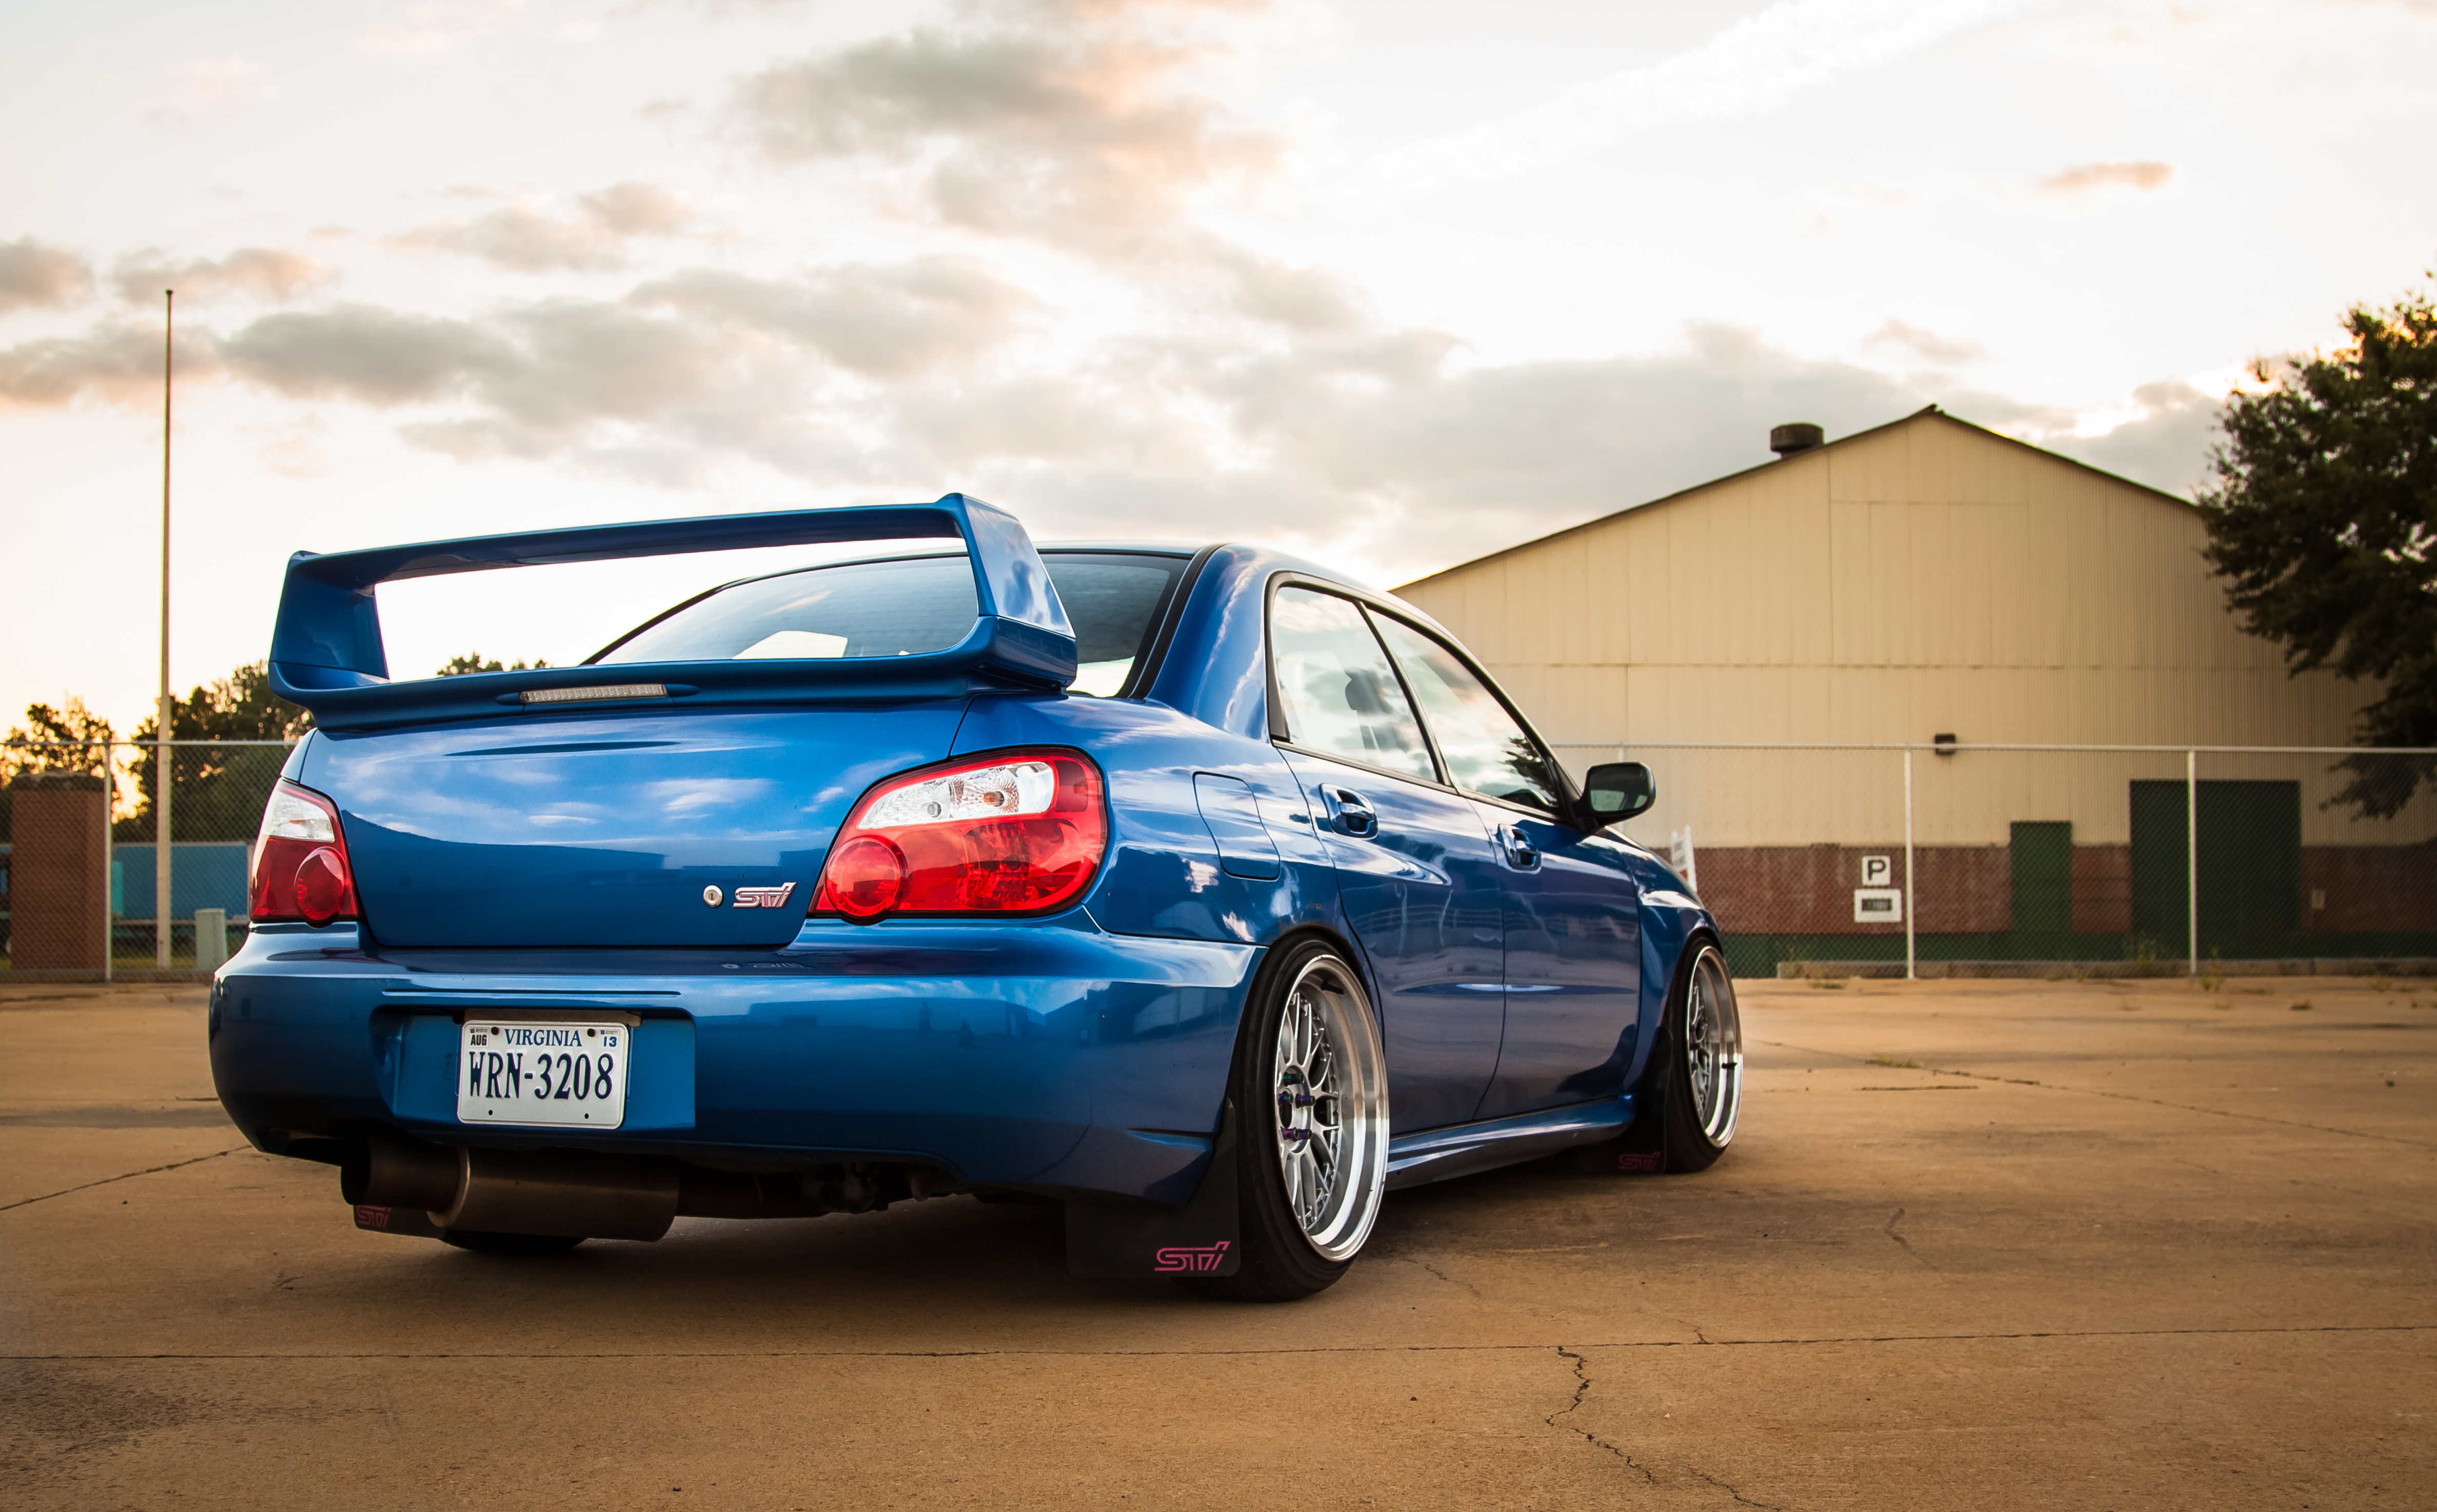 138235 download wallpaper Subaru, Cars, Back View, Rear View, Impreza, Wrx, Sti screensavers and pictures for free